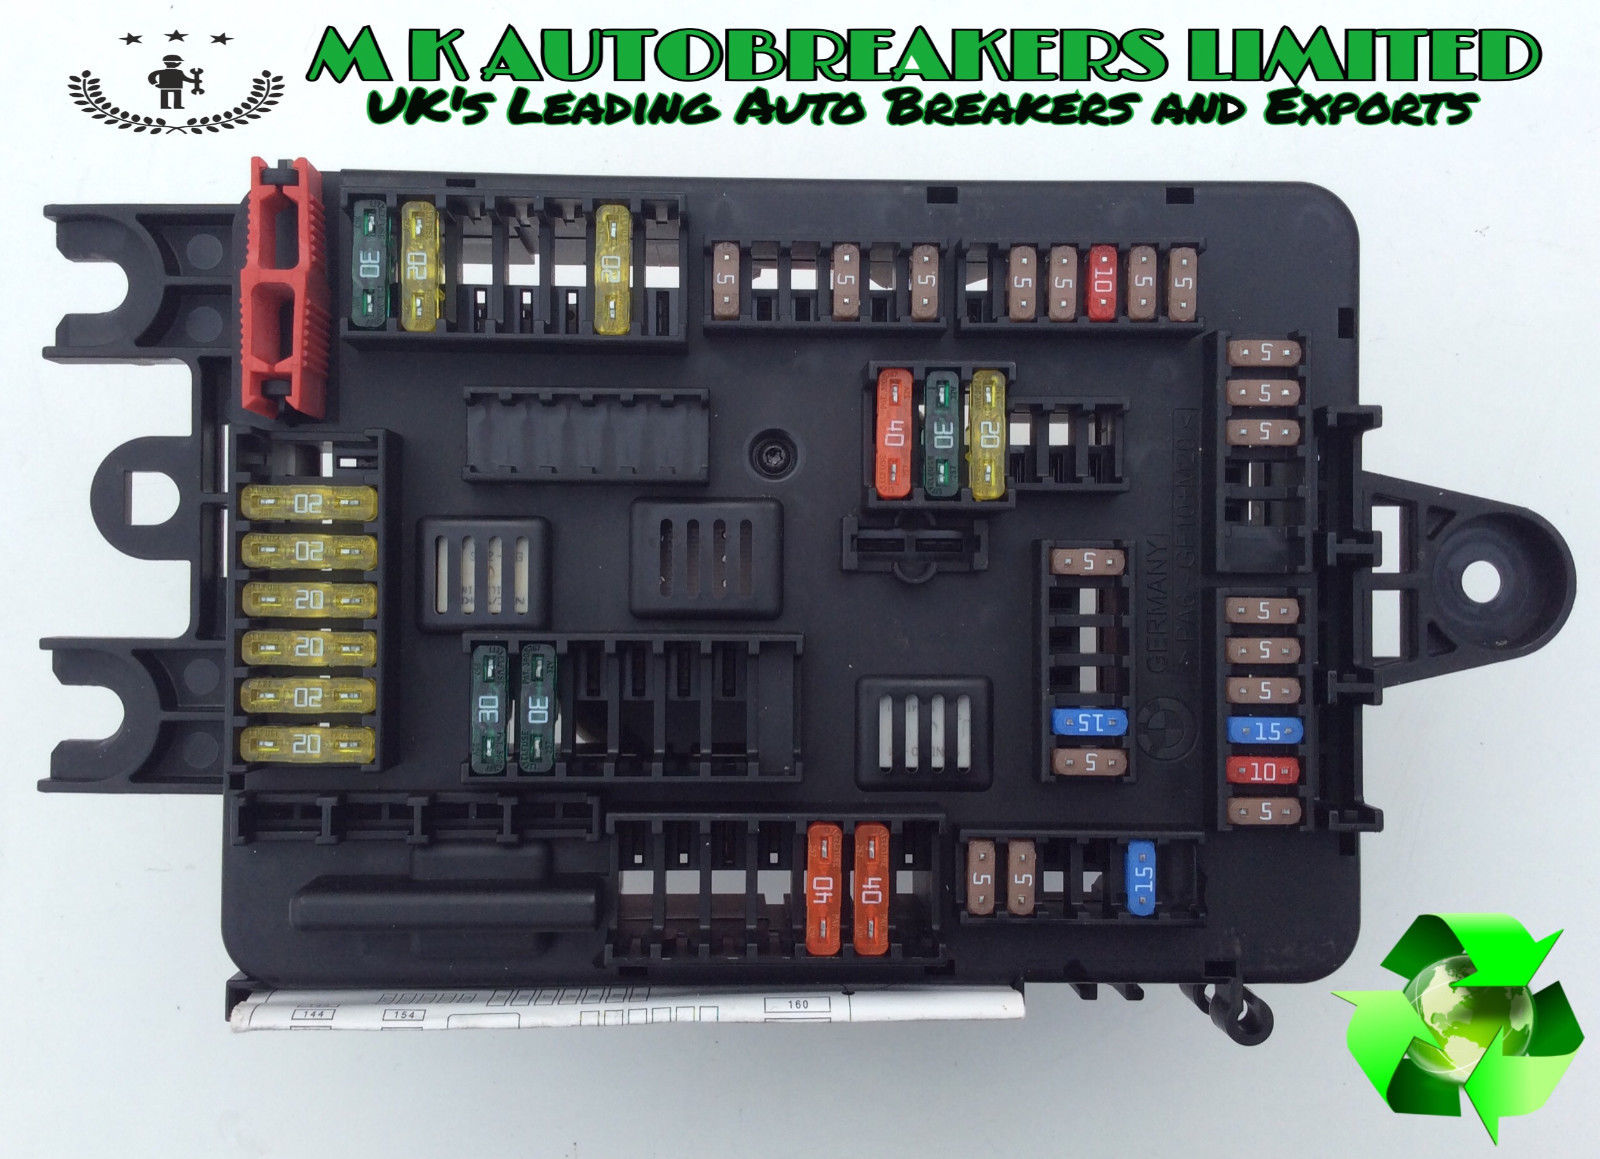 Bmw E90 Fuse Box Spares Electrical Wiring Diagrams E92 Explained Bumper Removal